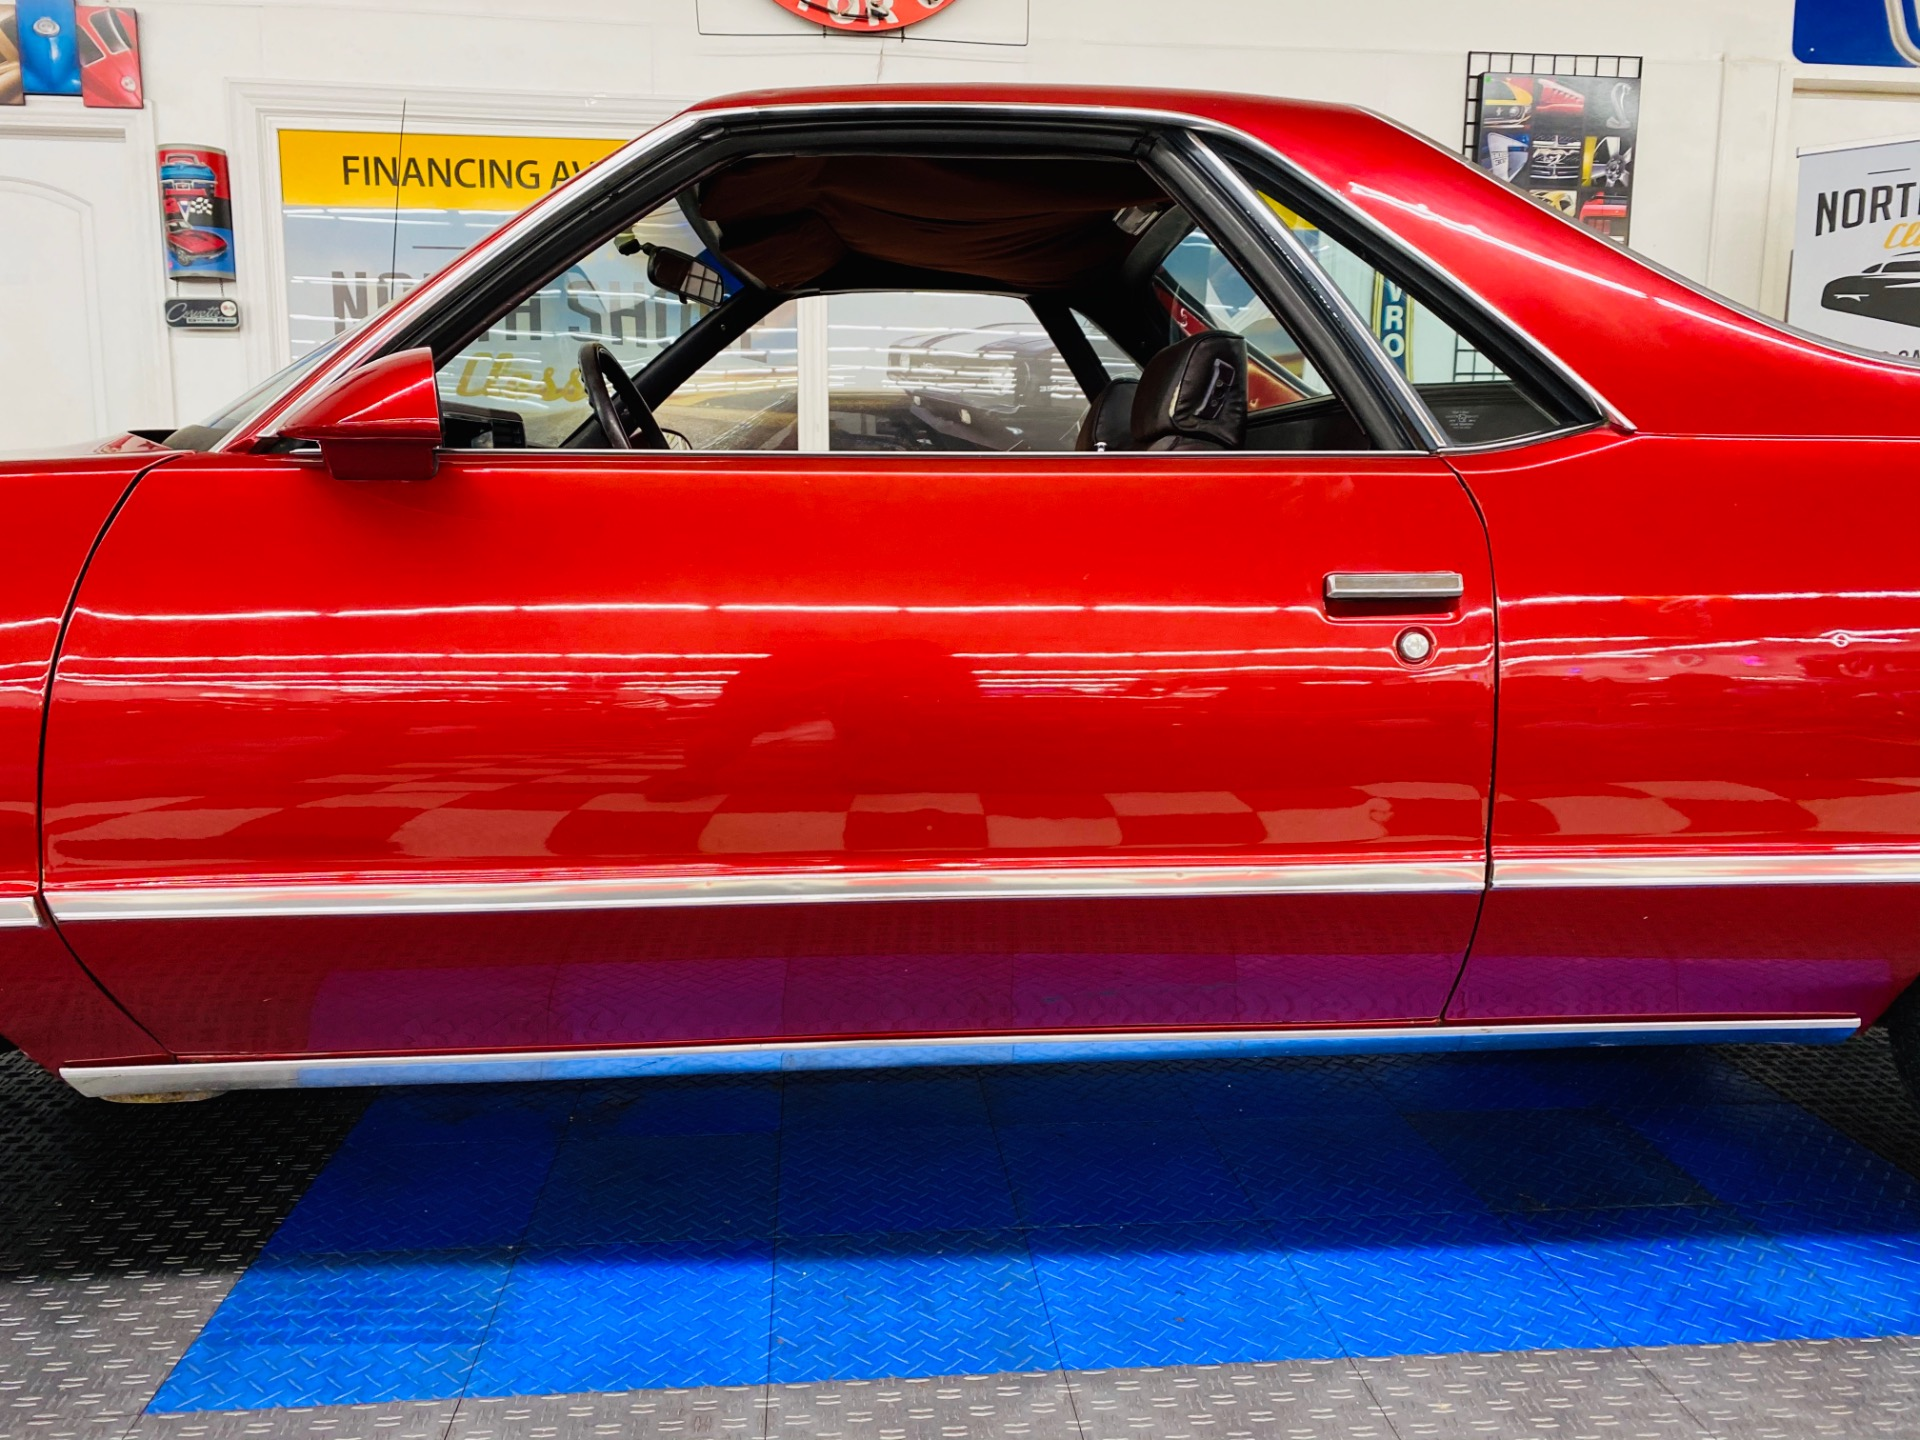 Used 1986 Chevrolet El Camino - VERY CLEAN - SOLID BED AND FLOORS - 5.0L ENGINE - SEE VIDEO | Mundelein, IL